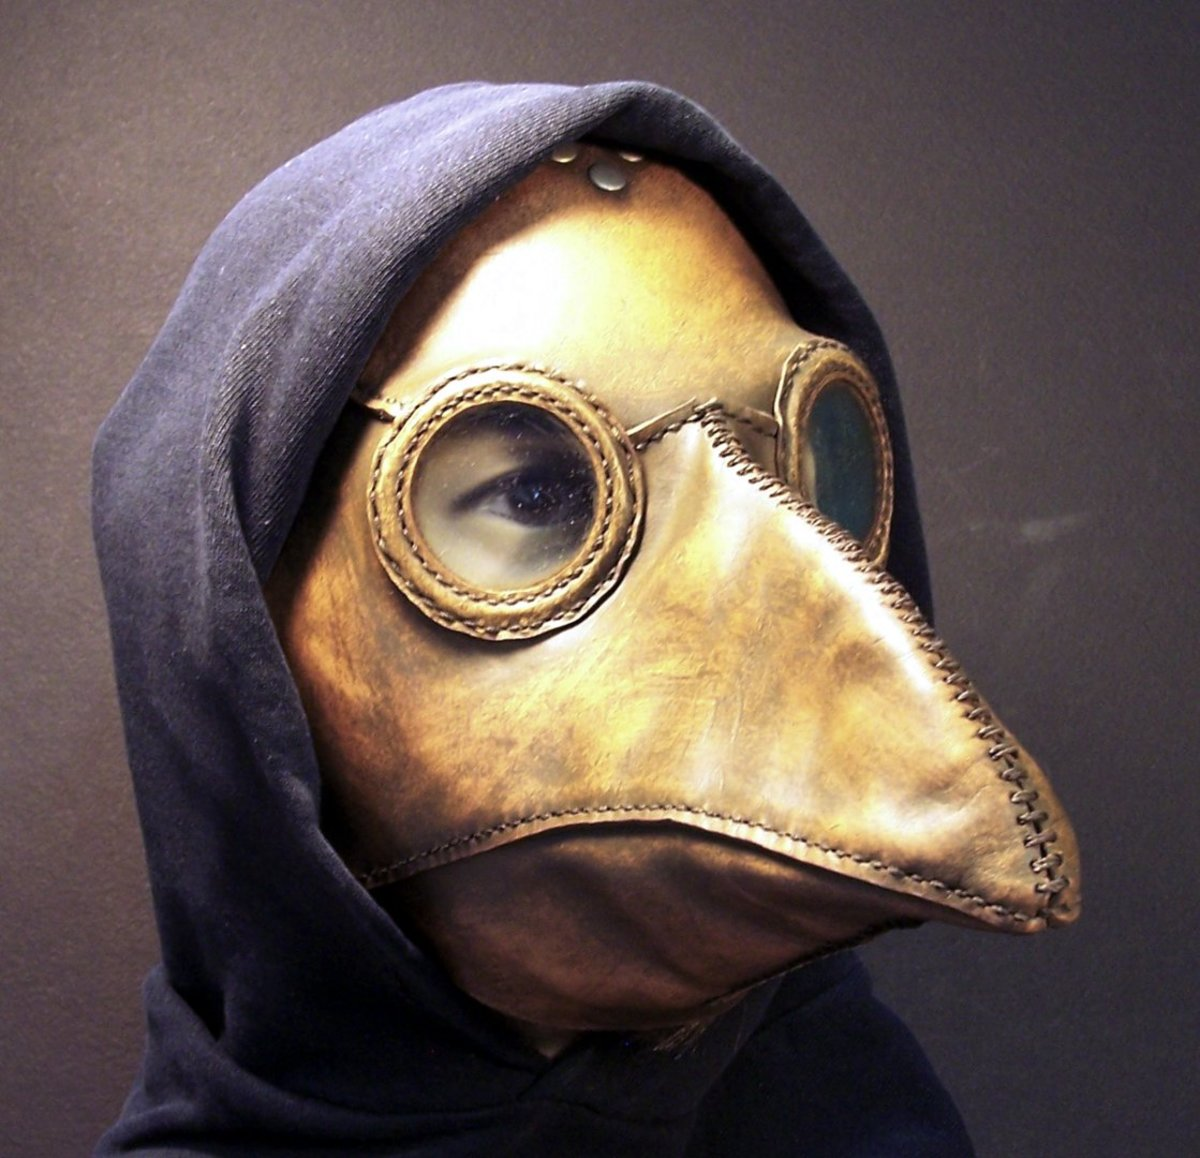 """Leather """"plague doctor"""" face mask. The """"beak was stuffed with aromatic herbs and essential oils to protect the doctor.but must have been terrifying for the patient."""